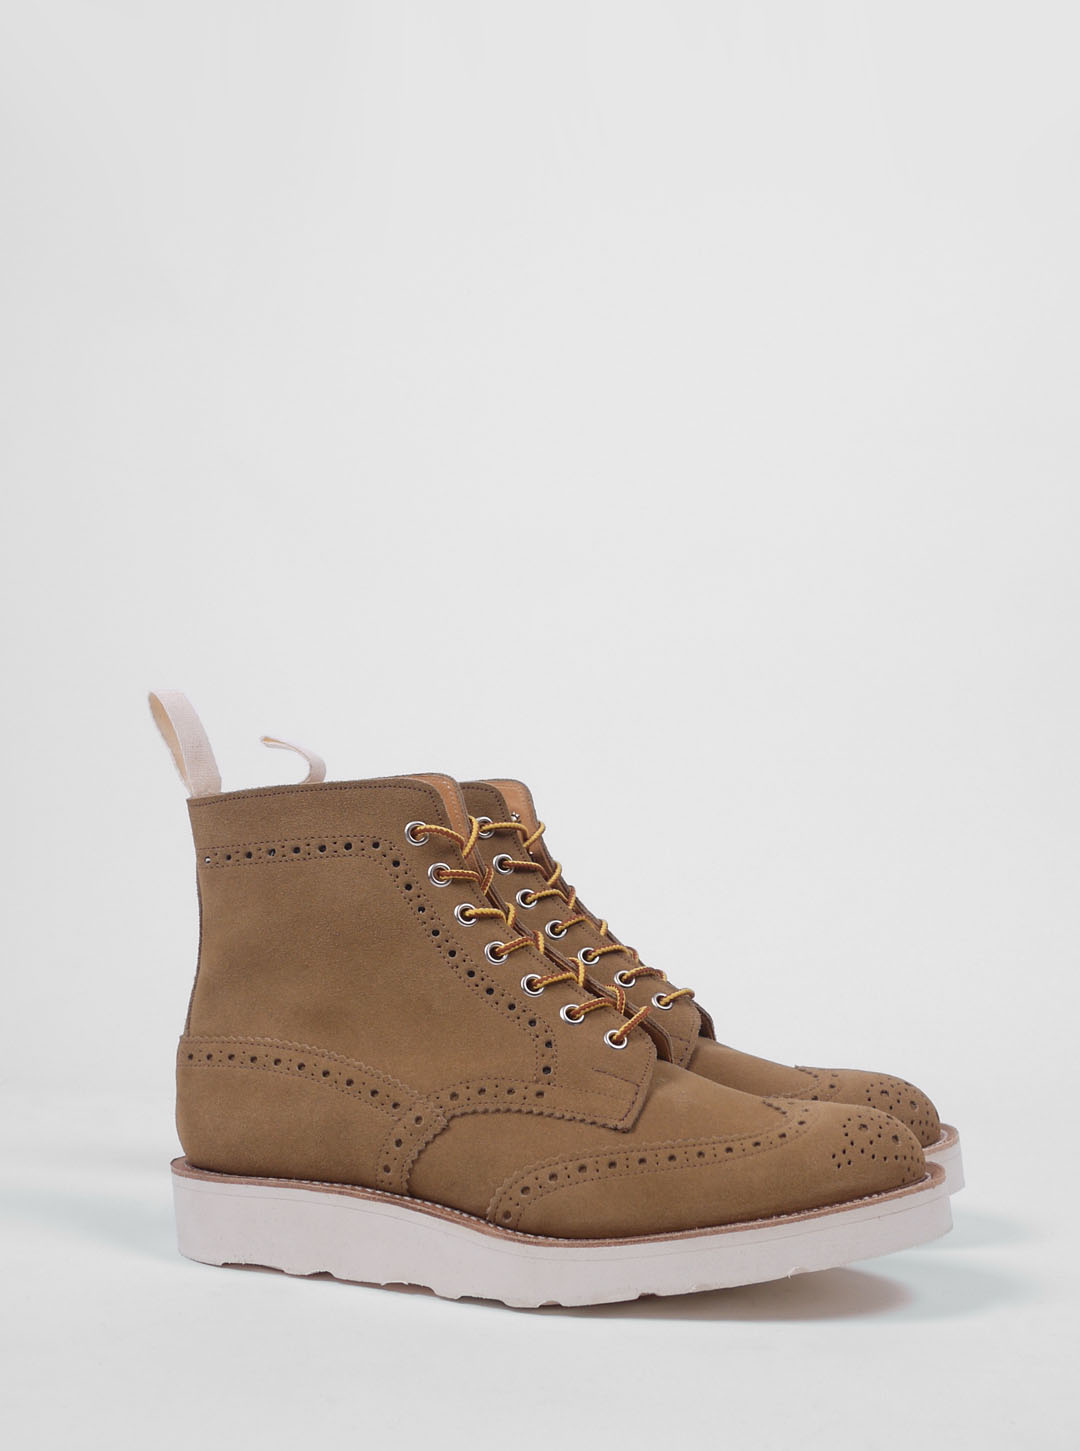 wear different trickers gaucho suede brogue boot